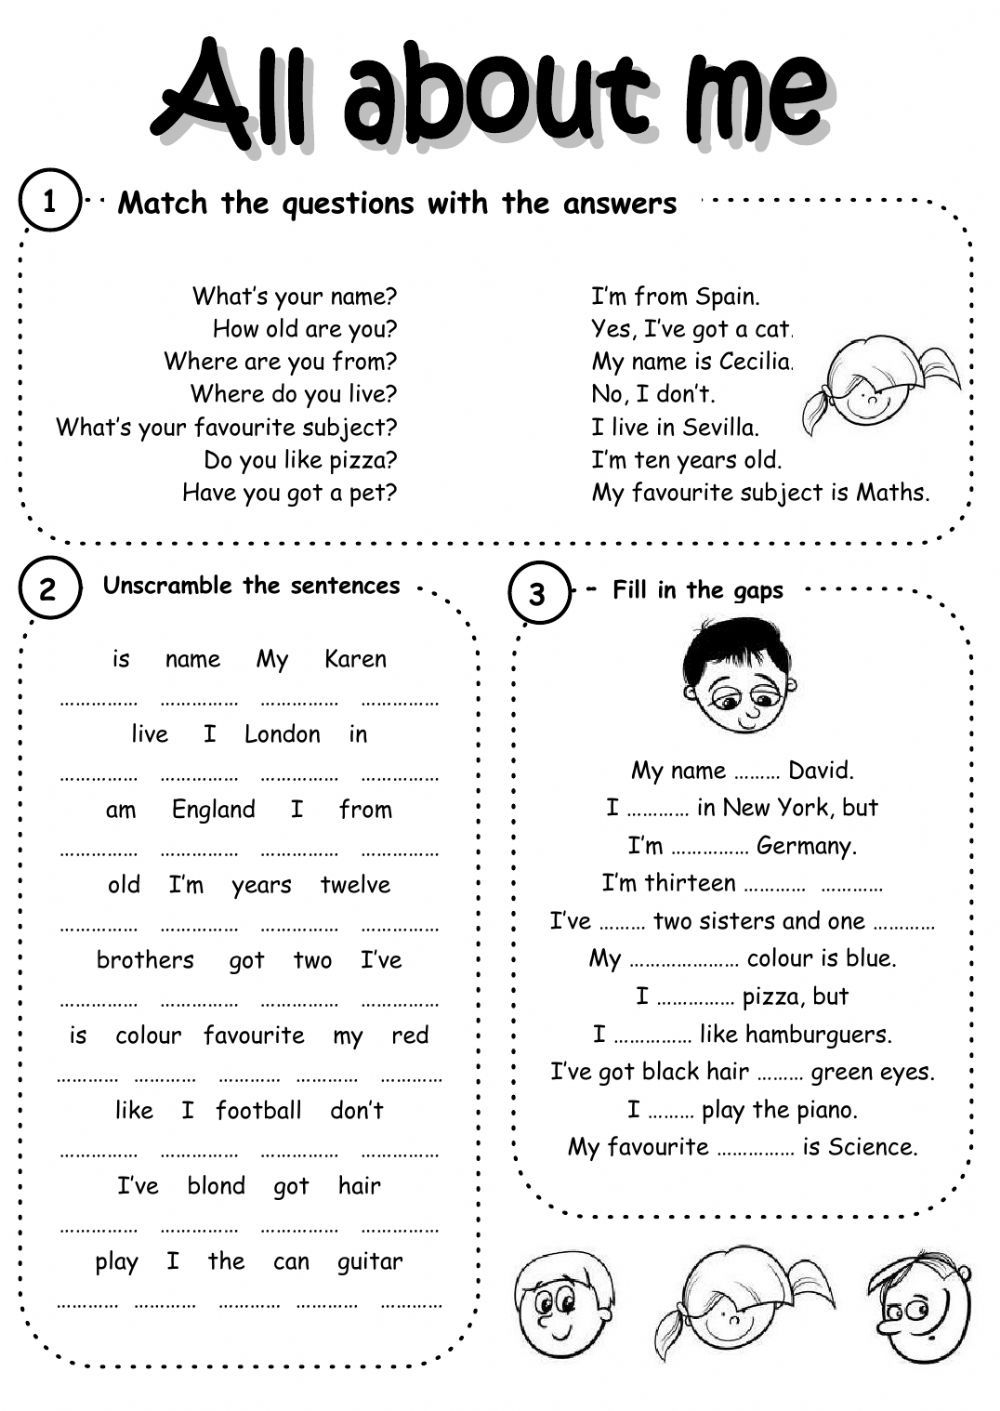 Worksheets Classroom Rules Worksheet introducing yourself interactive and downloadable worksheet check your answers online or send them to your